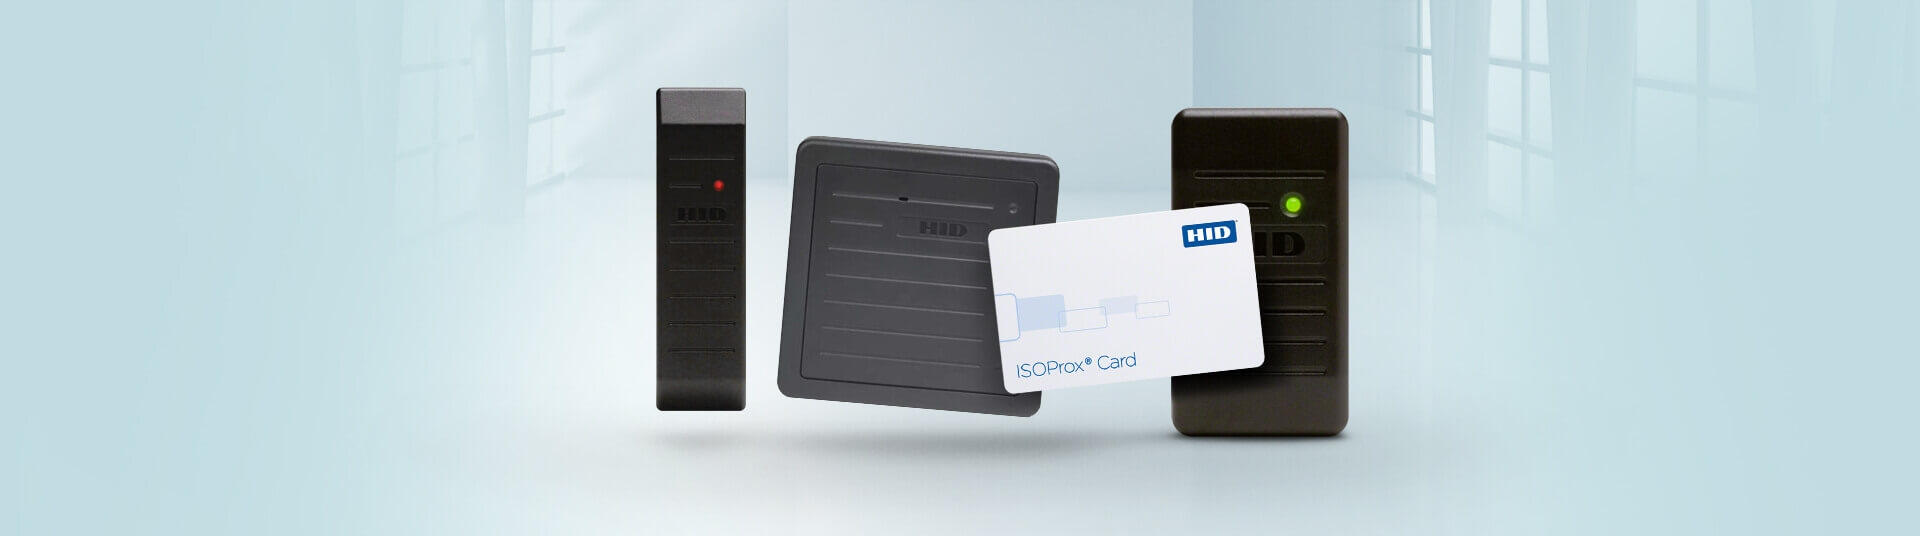 HID Prox Card Readers